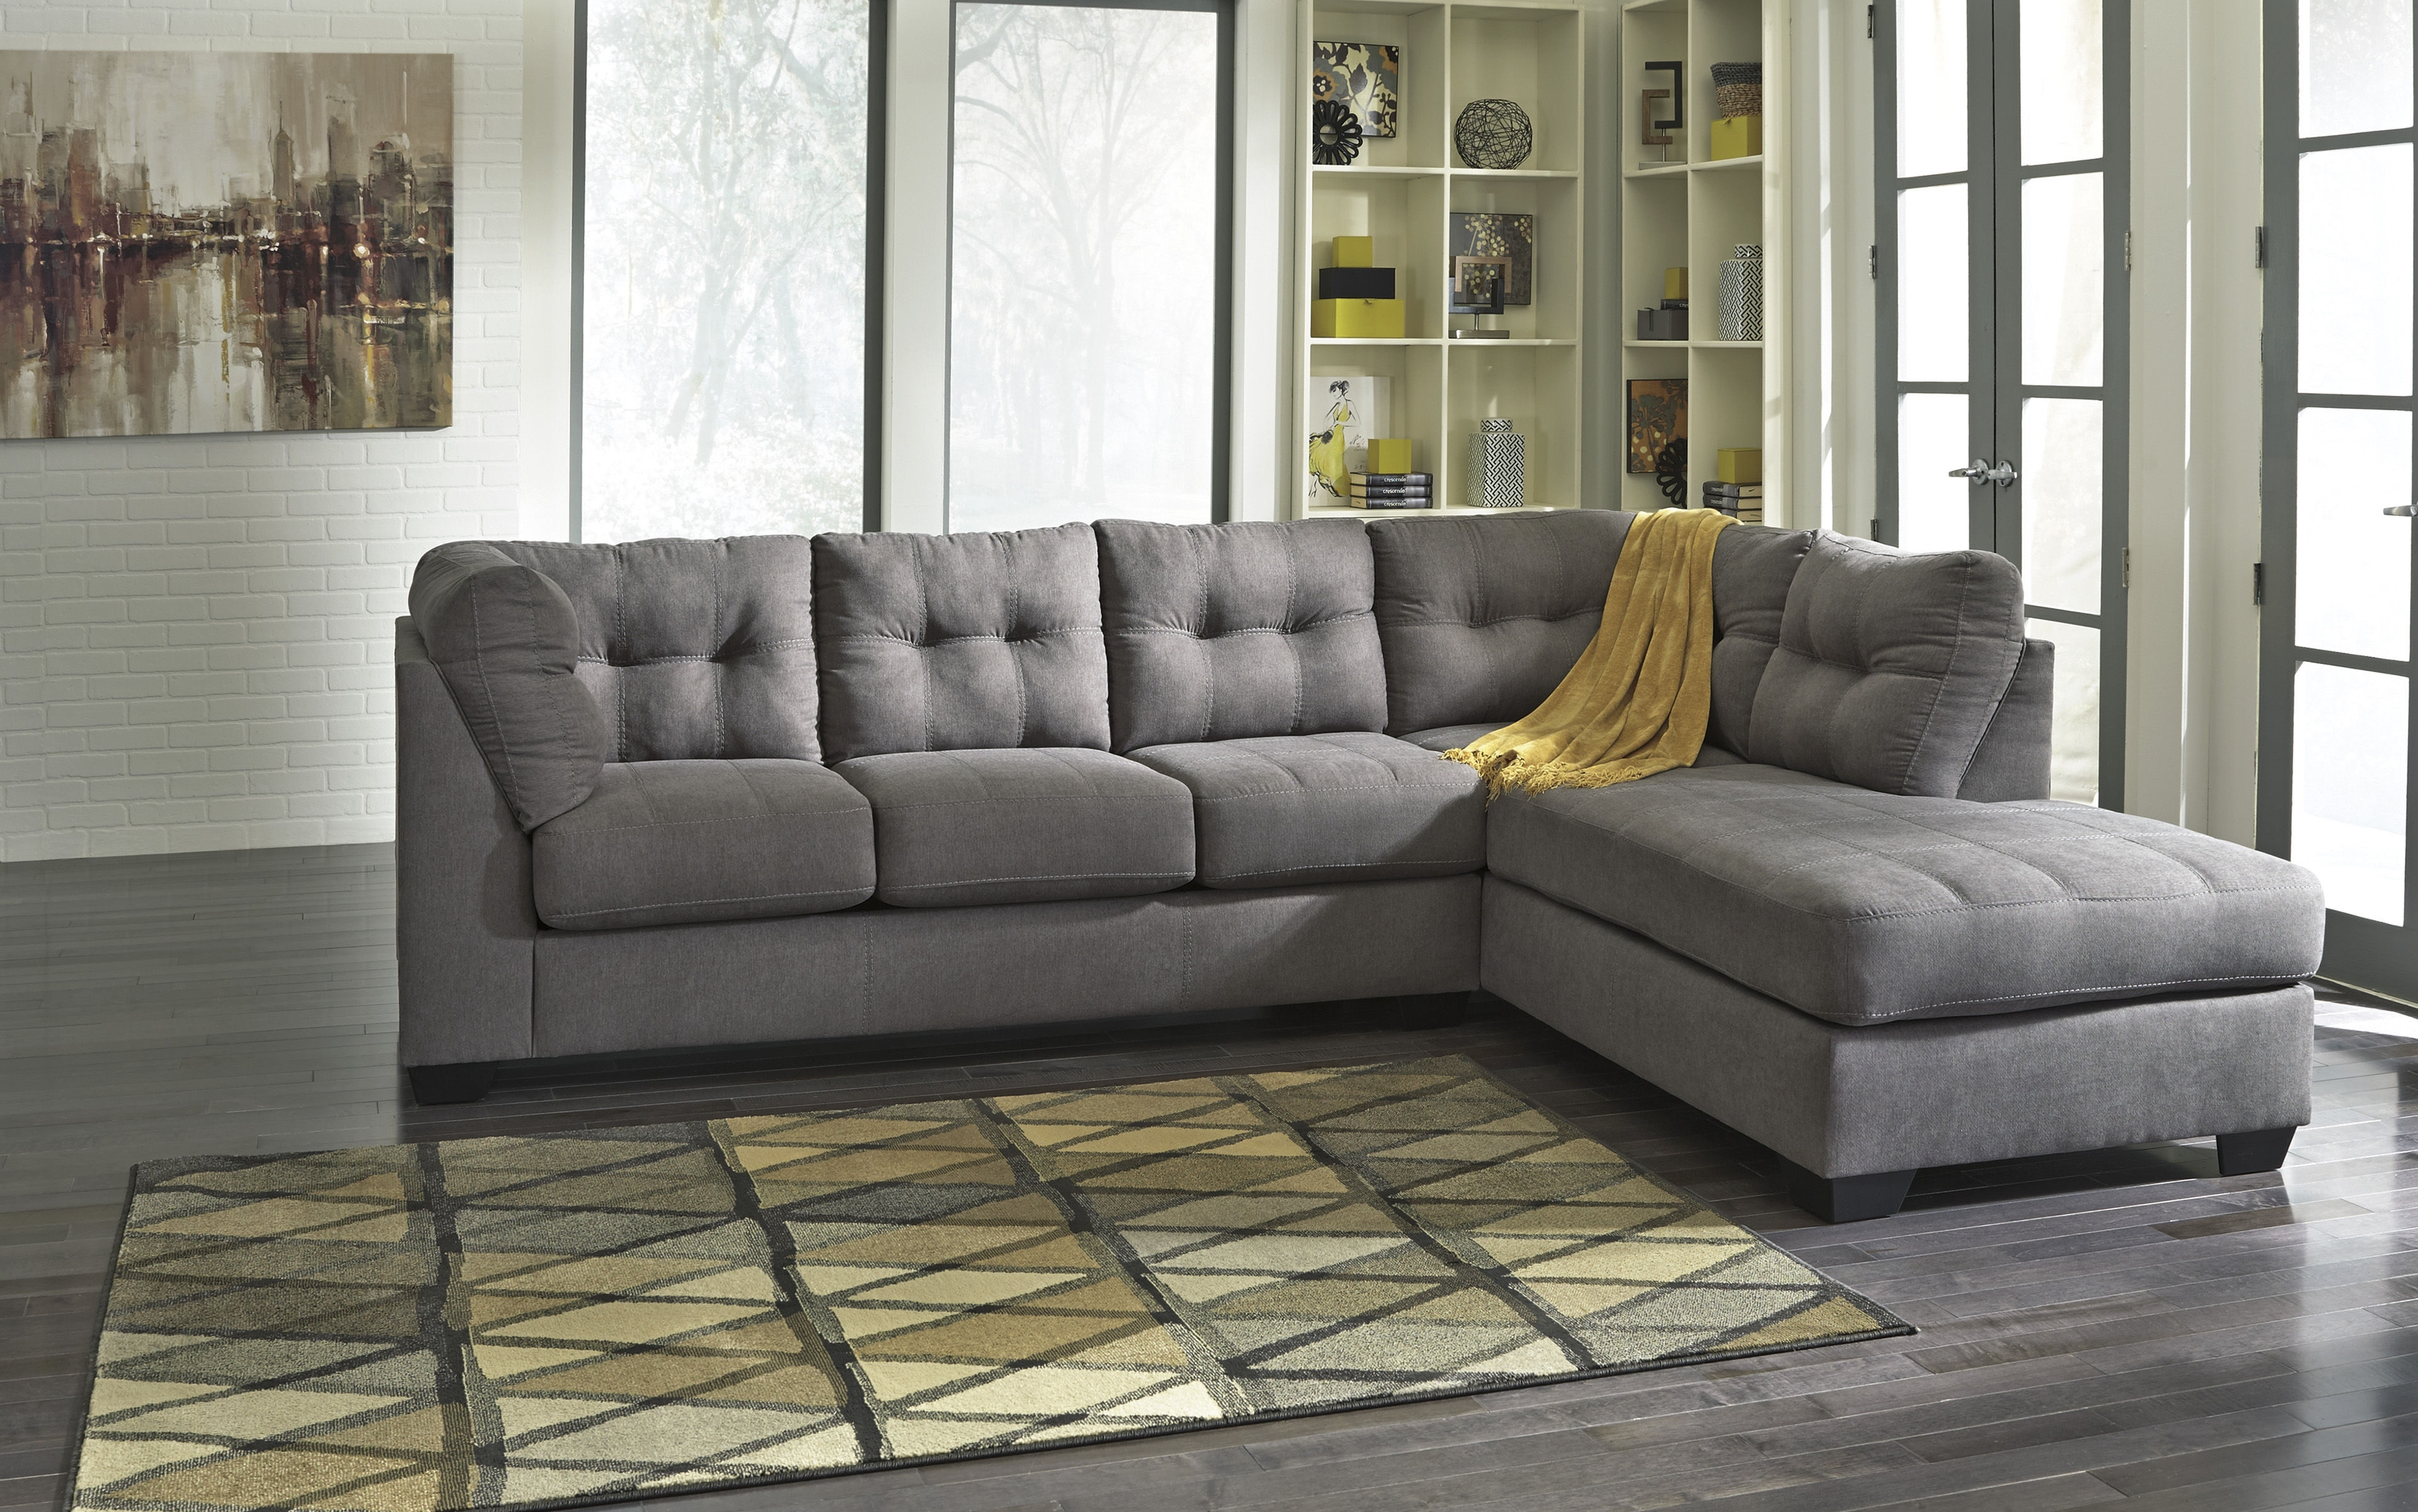 Ashley Furniture Maier Charcoal Raf Chaise Sectional | The Classy Home With Lucy Dark Grey 2 Piece Sectionals With Laf Chaise (View 9 of 25)